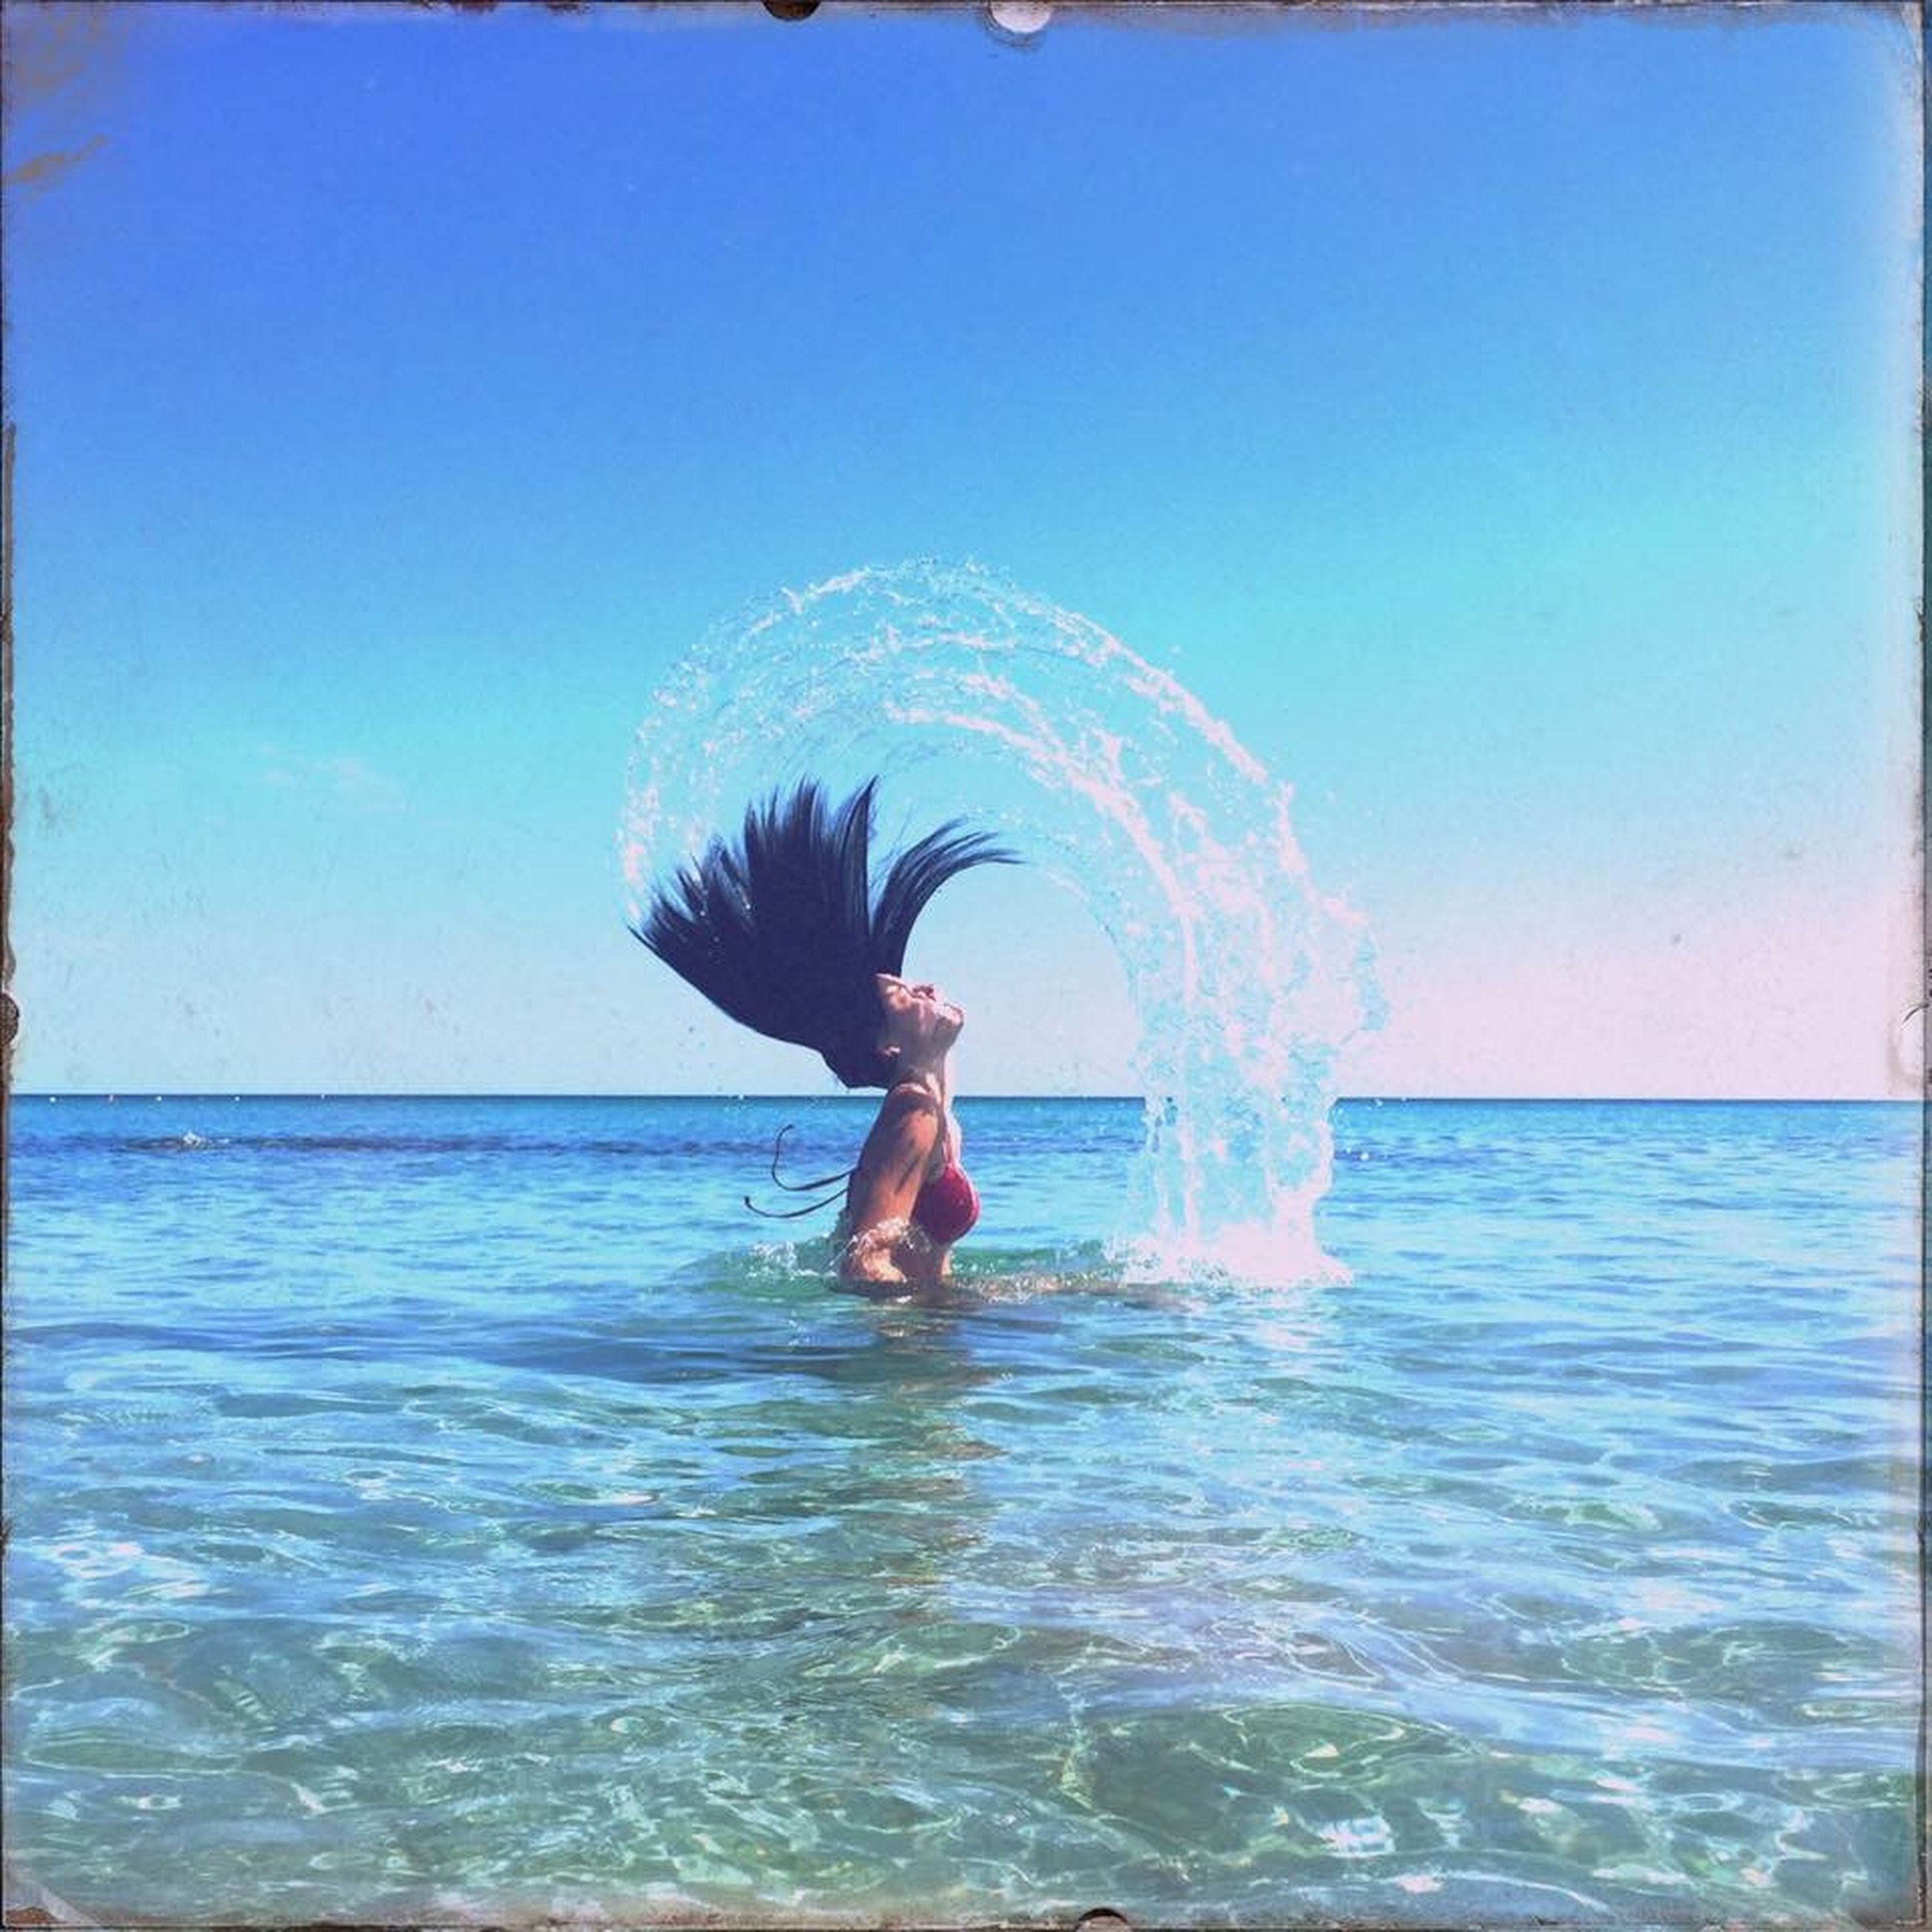 water, leisure activity, sea, lifestyles, waterfront, clear sky, enjoyment, full length, blue, motion, fun, swimming pool, splashing, vacations, young adult, copy space, horizon over water, swimming